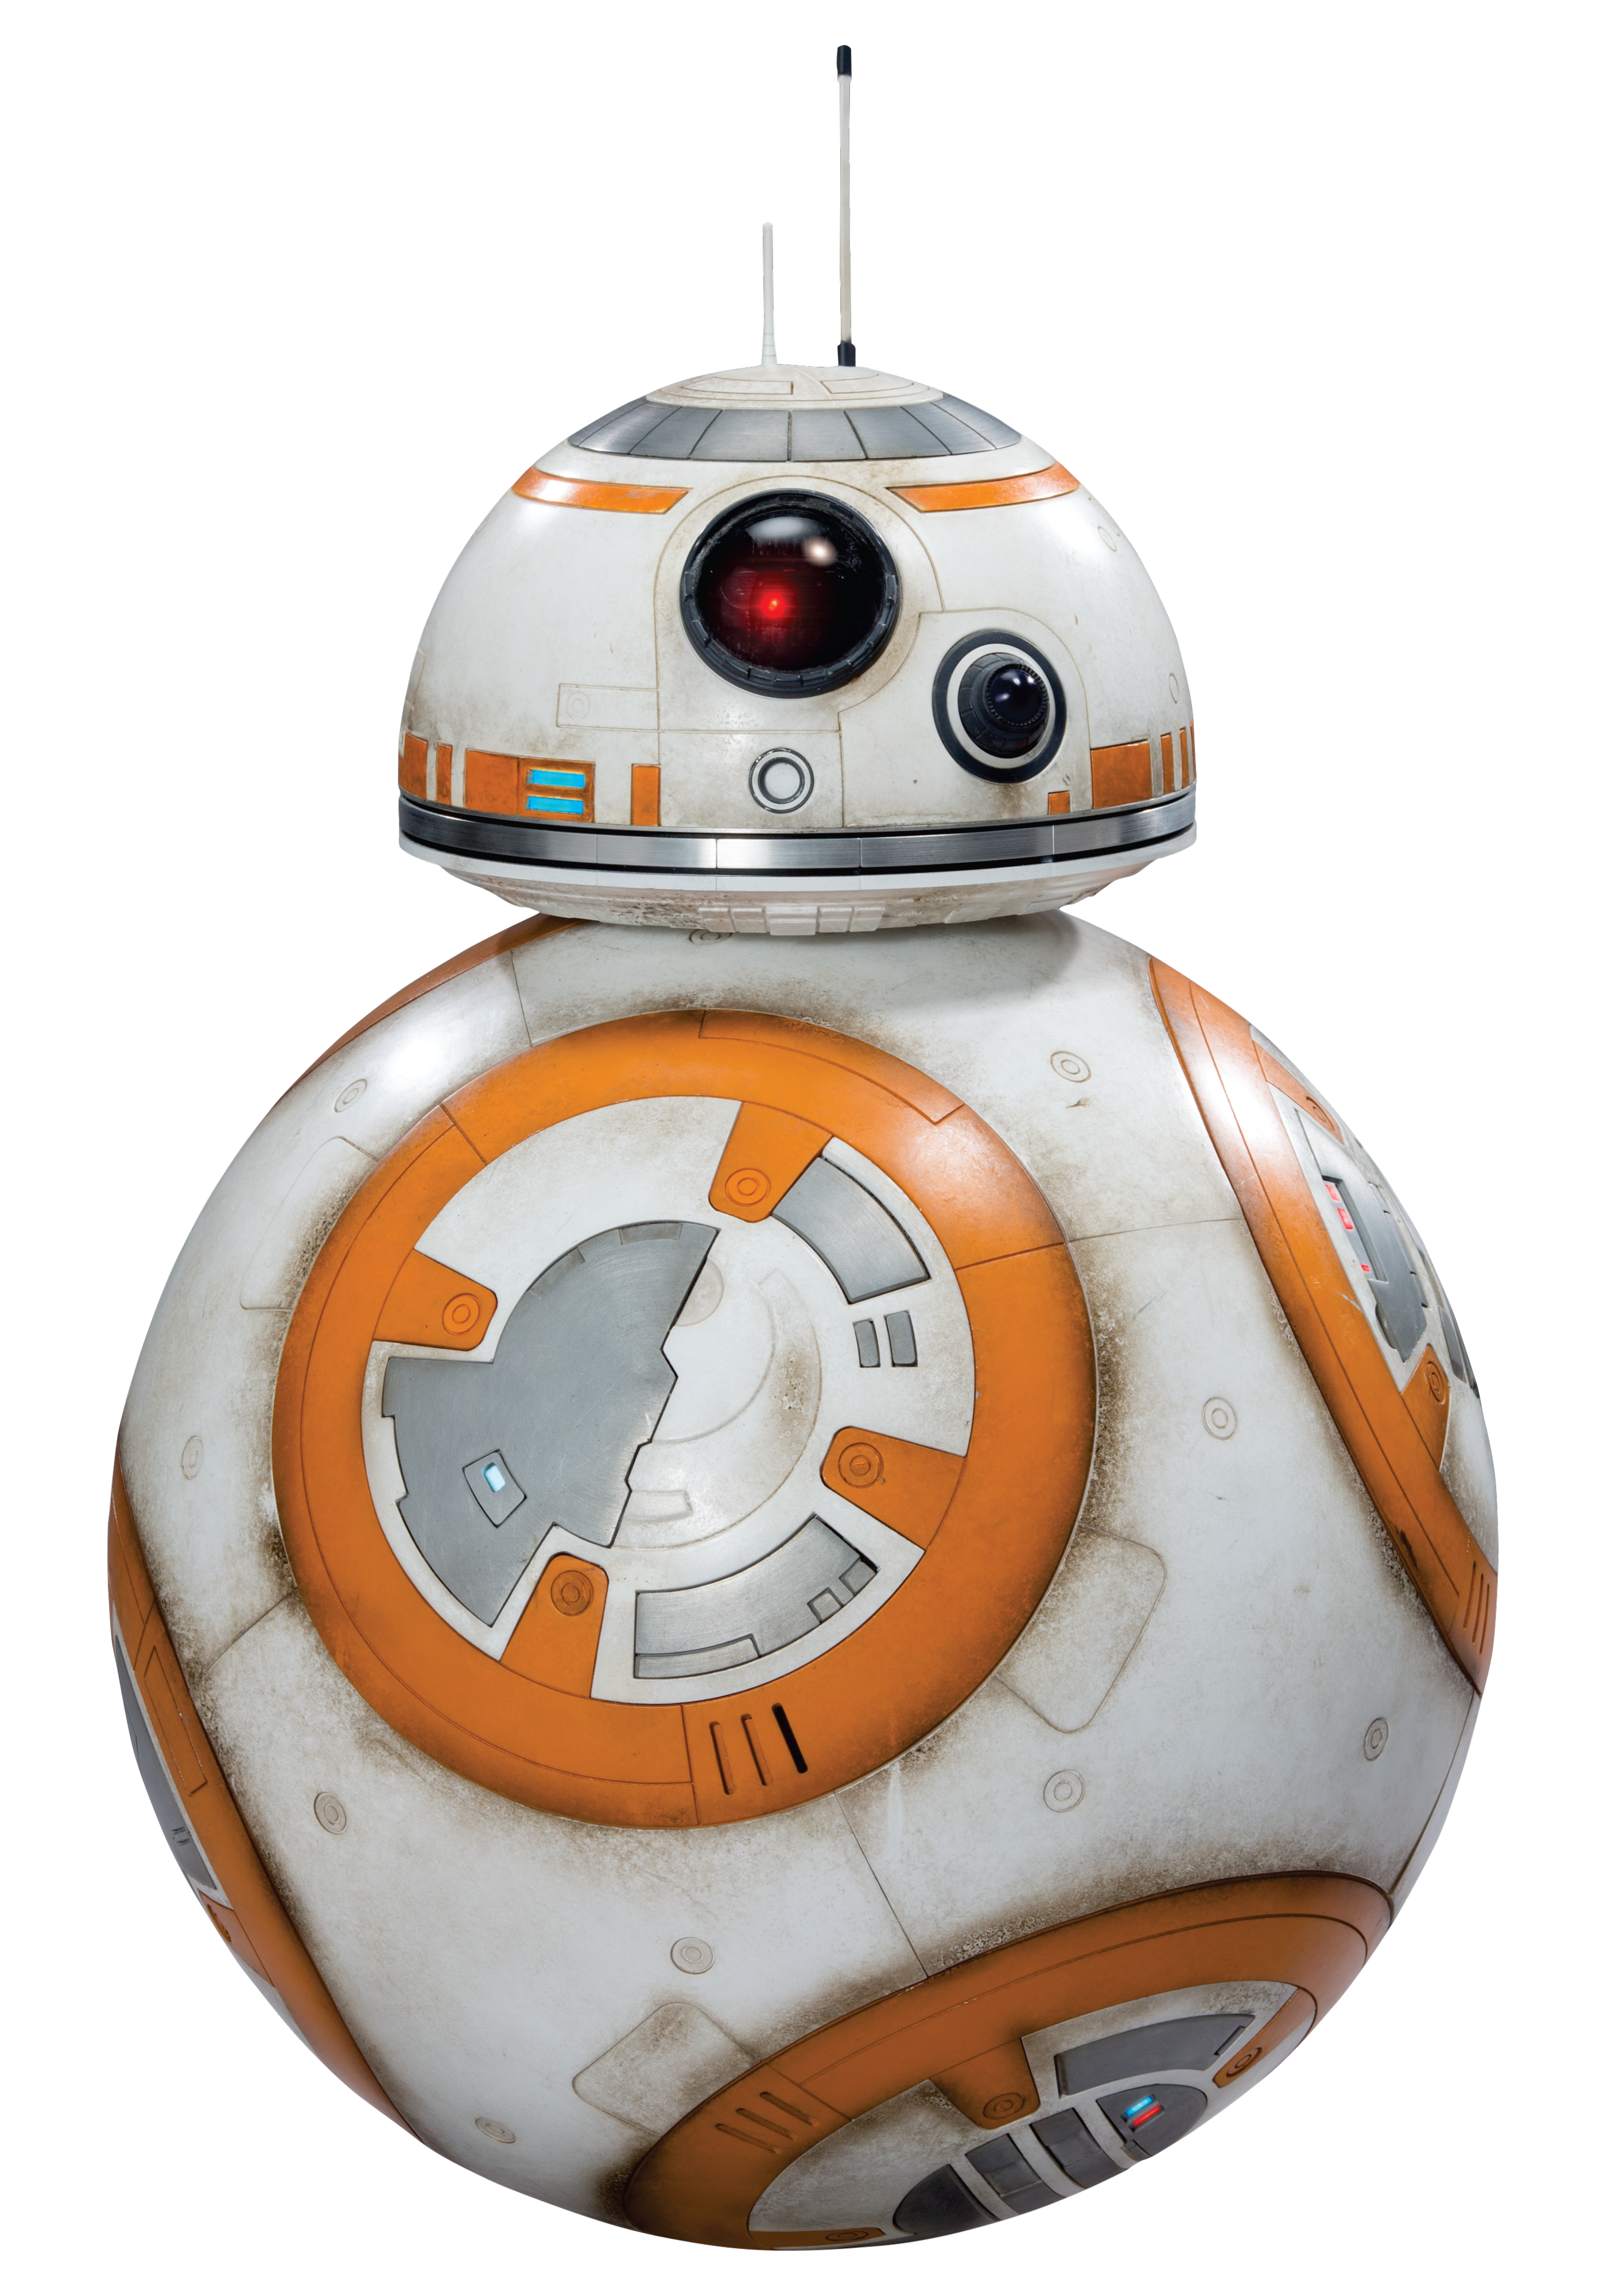 a robot with a spherical body and a smaller hemisphere for a head it is first appearance star wars the force awakens